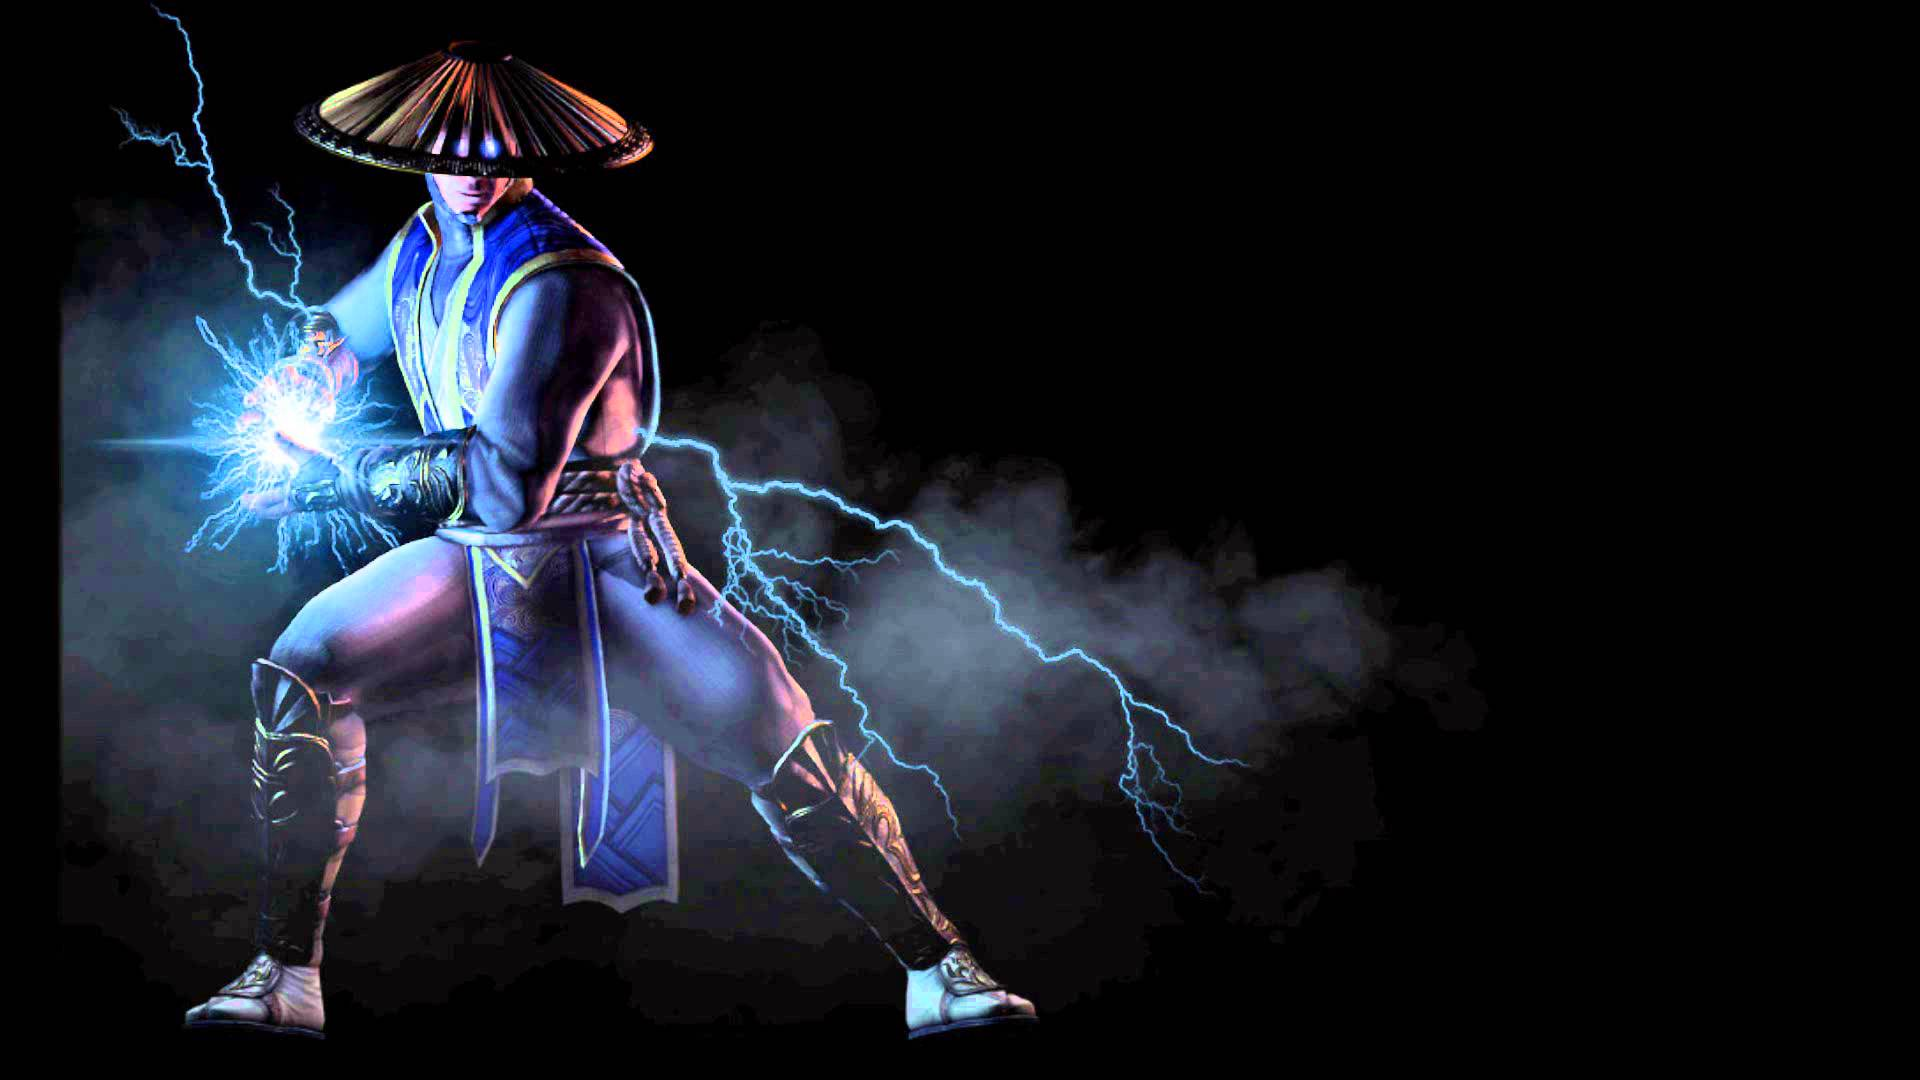 Mortal Kombat X   Raiden loading screen render HD 1920x1080